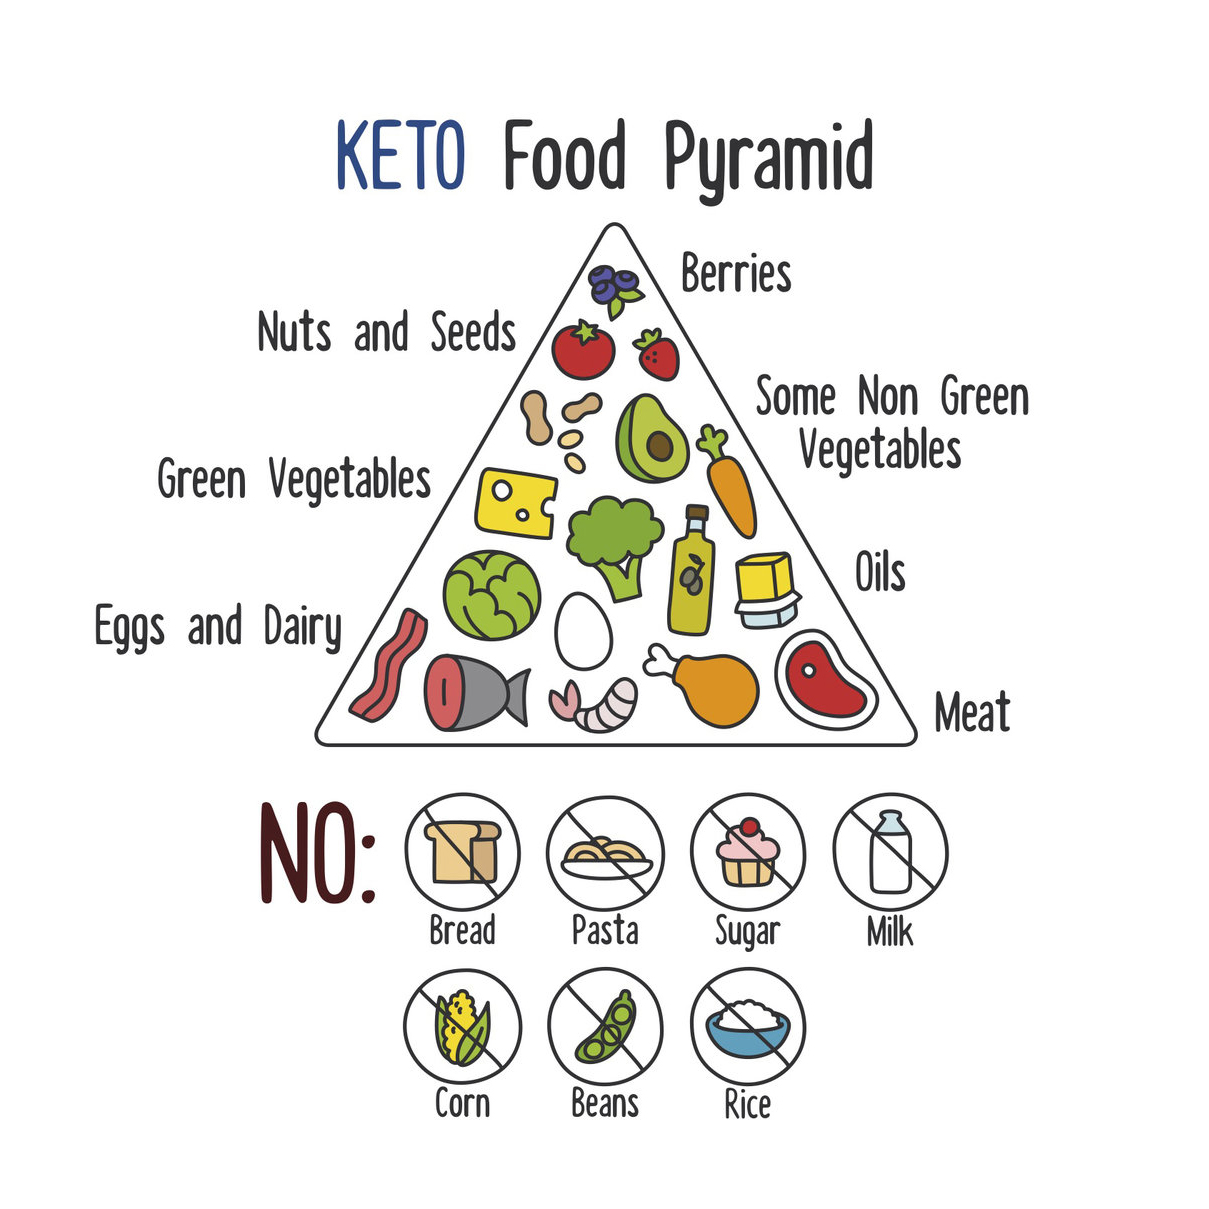 CHECK OUT MY NEW SECTION: WHAT IS KETO?!